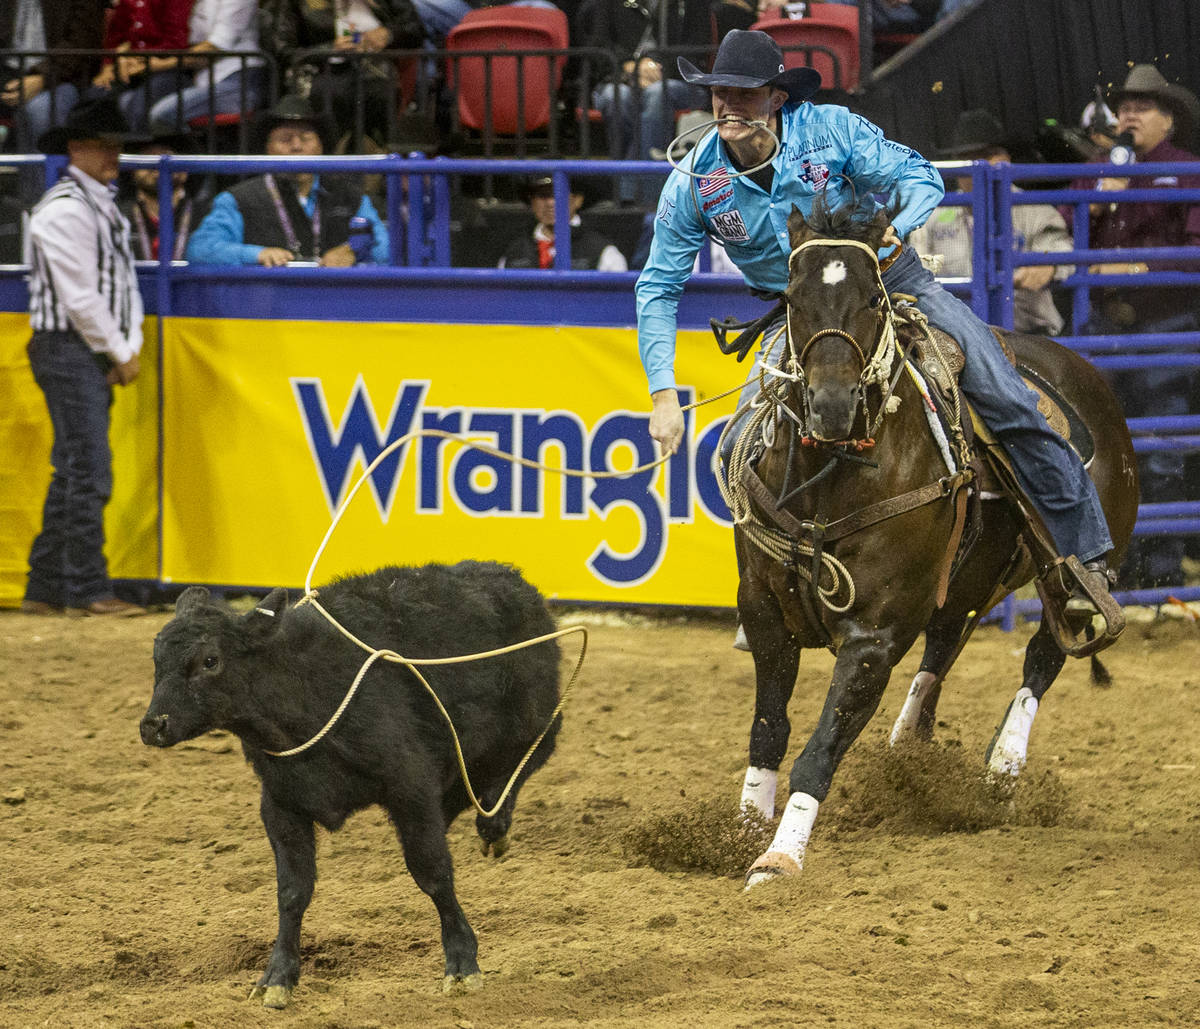 Tuf Cooper of Decatur, Texas, eyes his steer in Tie-Down Roping at the tenth go round of the Wr ...